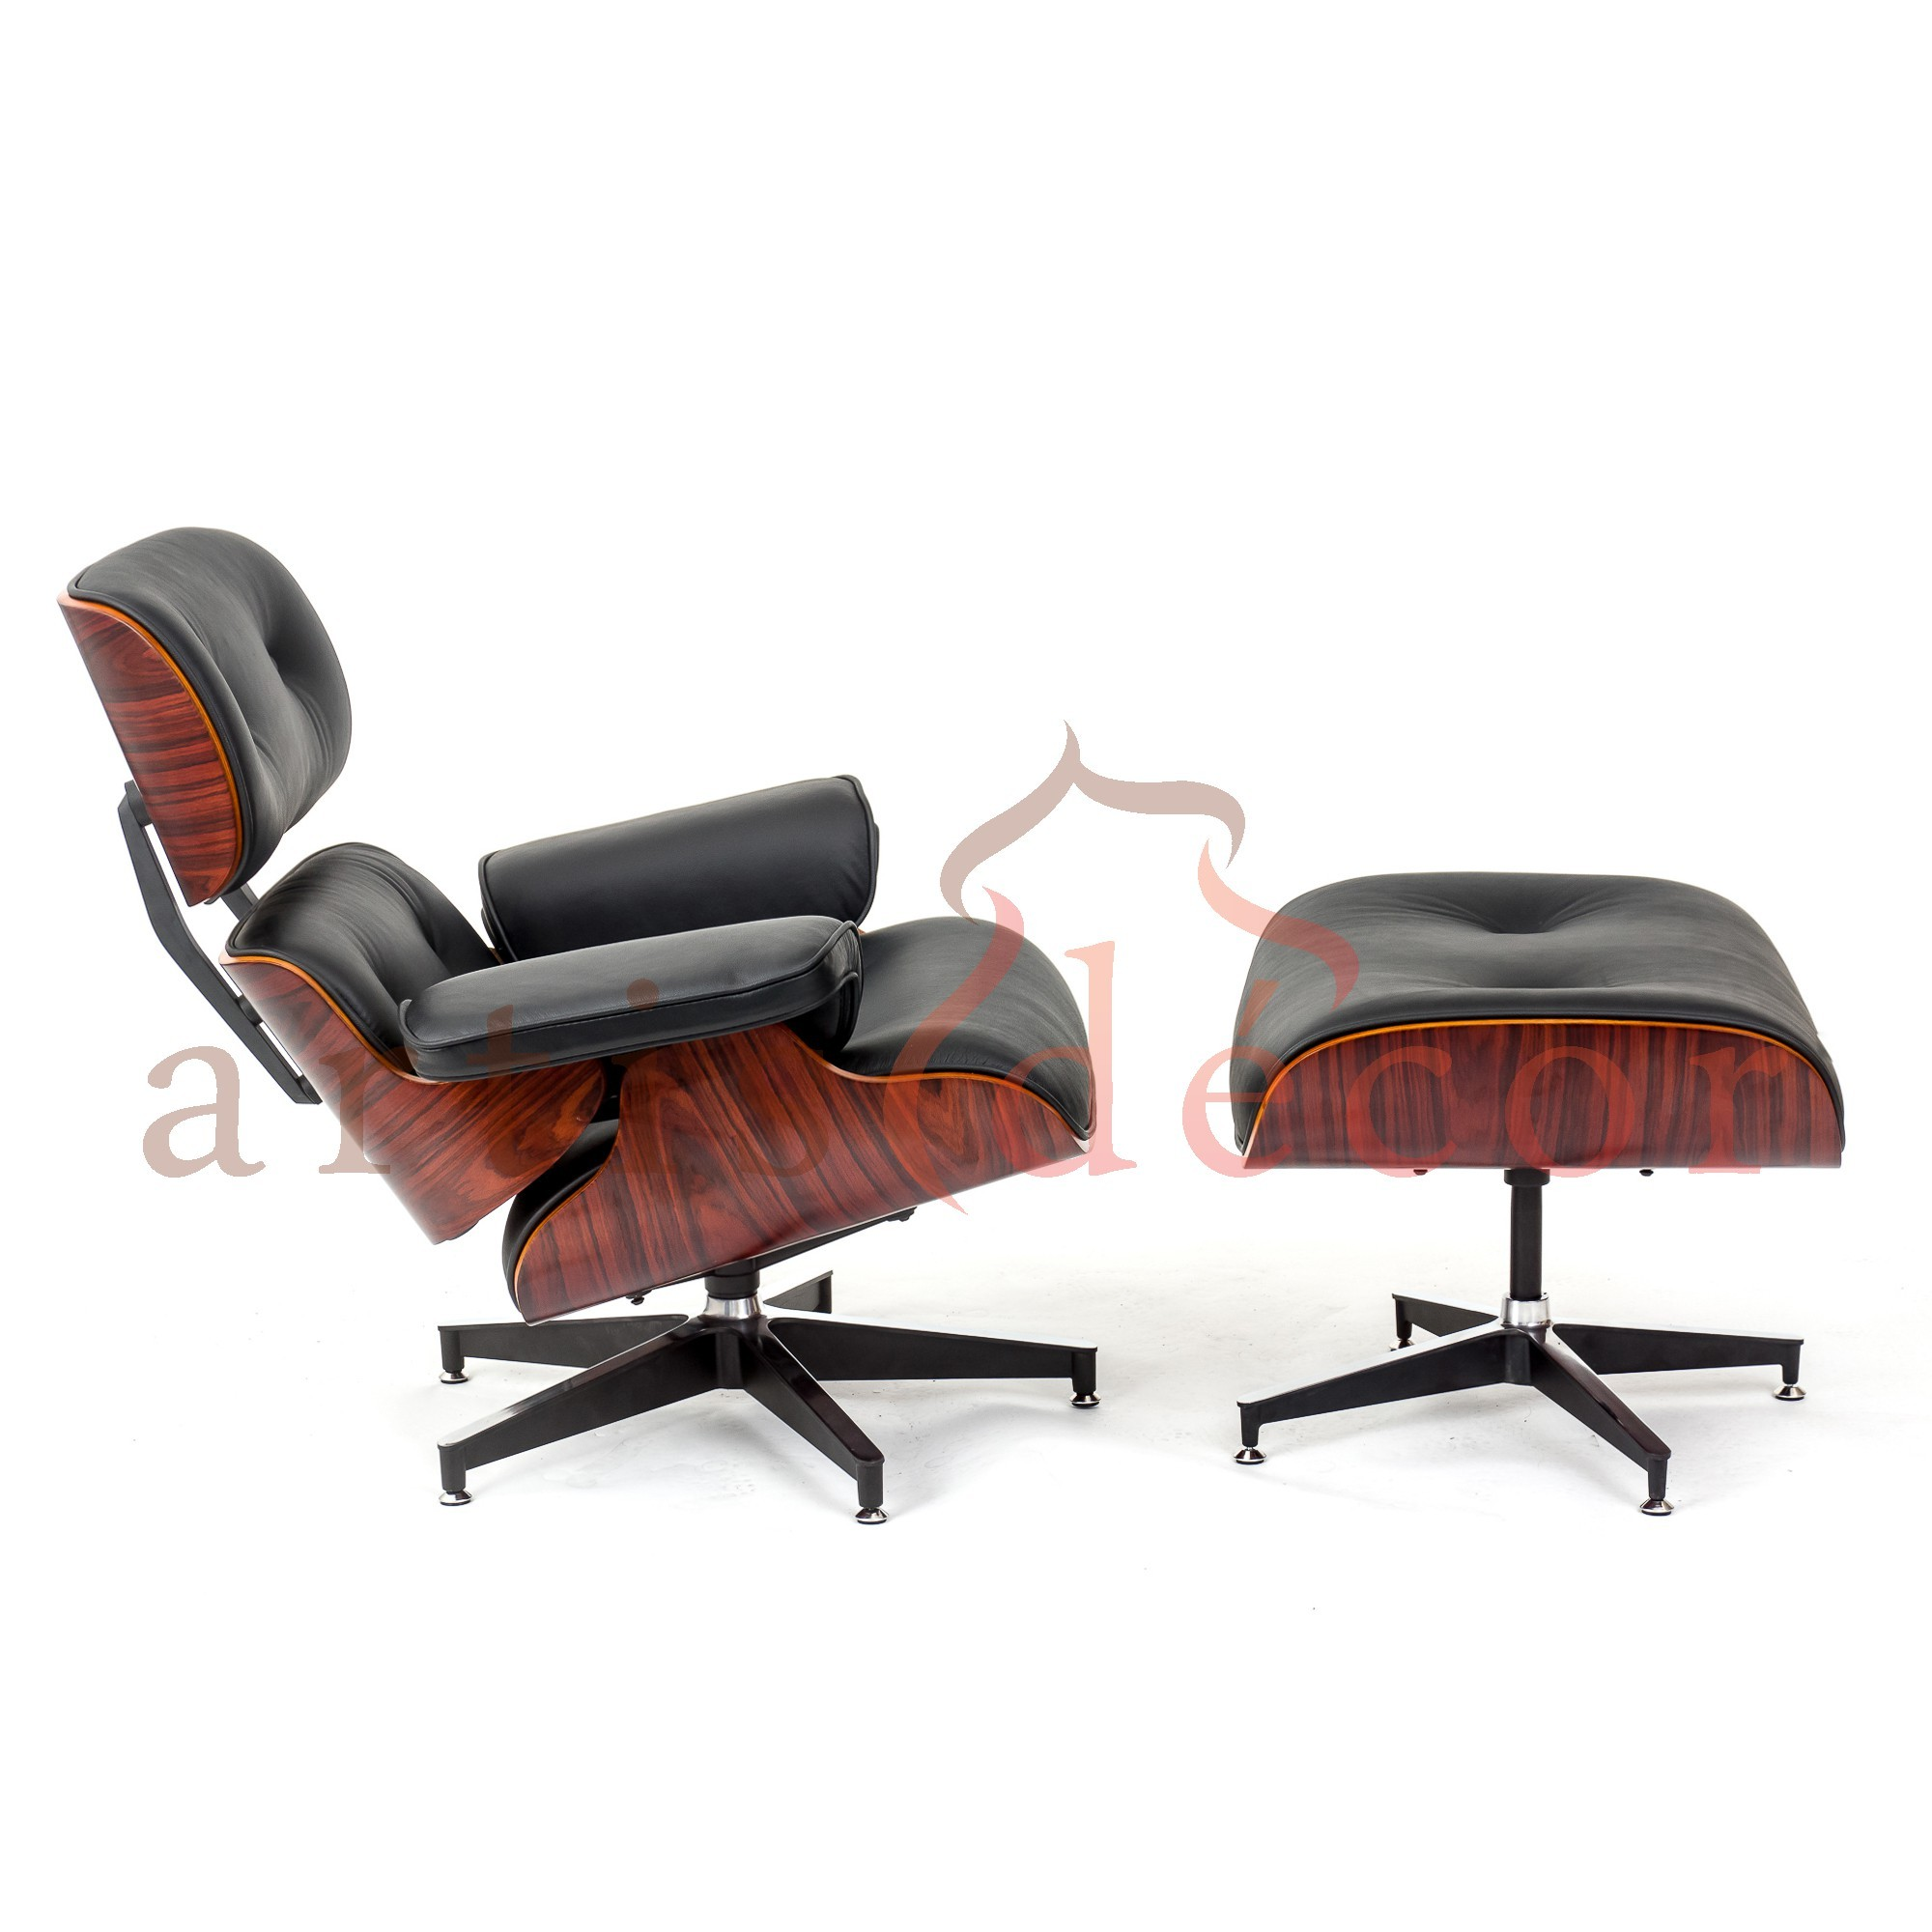 Plywood Lounge Chair   Ottoman   Aniline Leather  Rosewood Lounge chair and ottoman Black Leather Replica   Artis D cor. Eames Lounge Chair And Ottoman Walnut Frame Standard Leather. Home Design Ideas